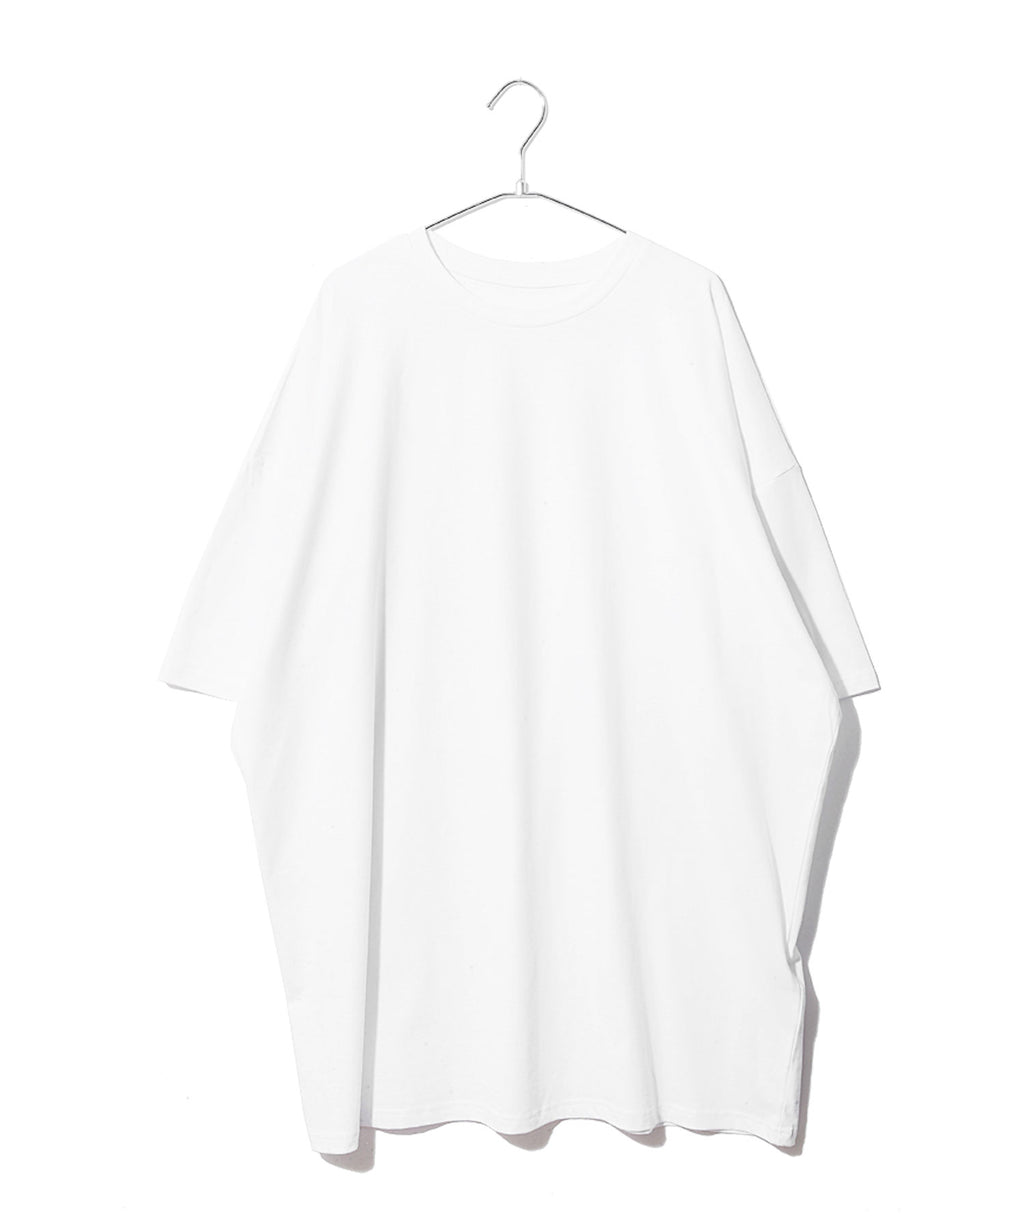 Cotton Super big T-shirt